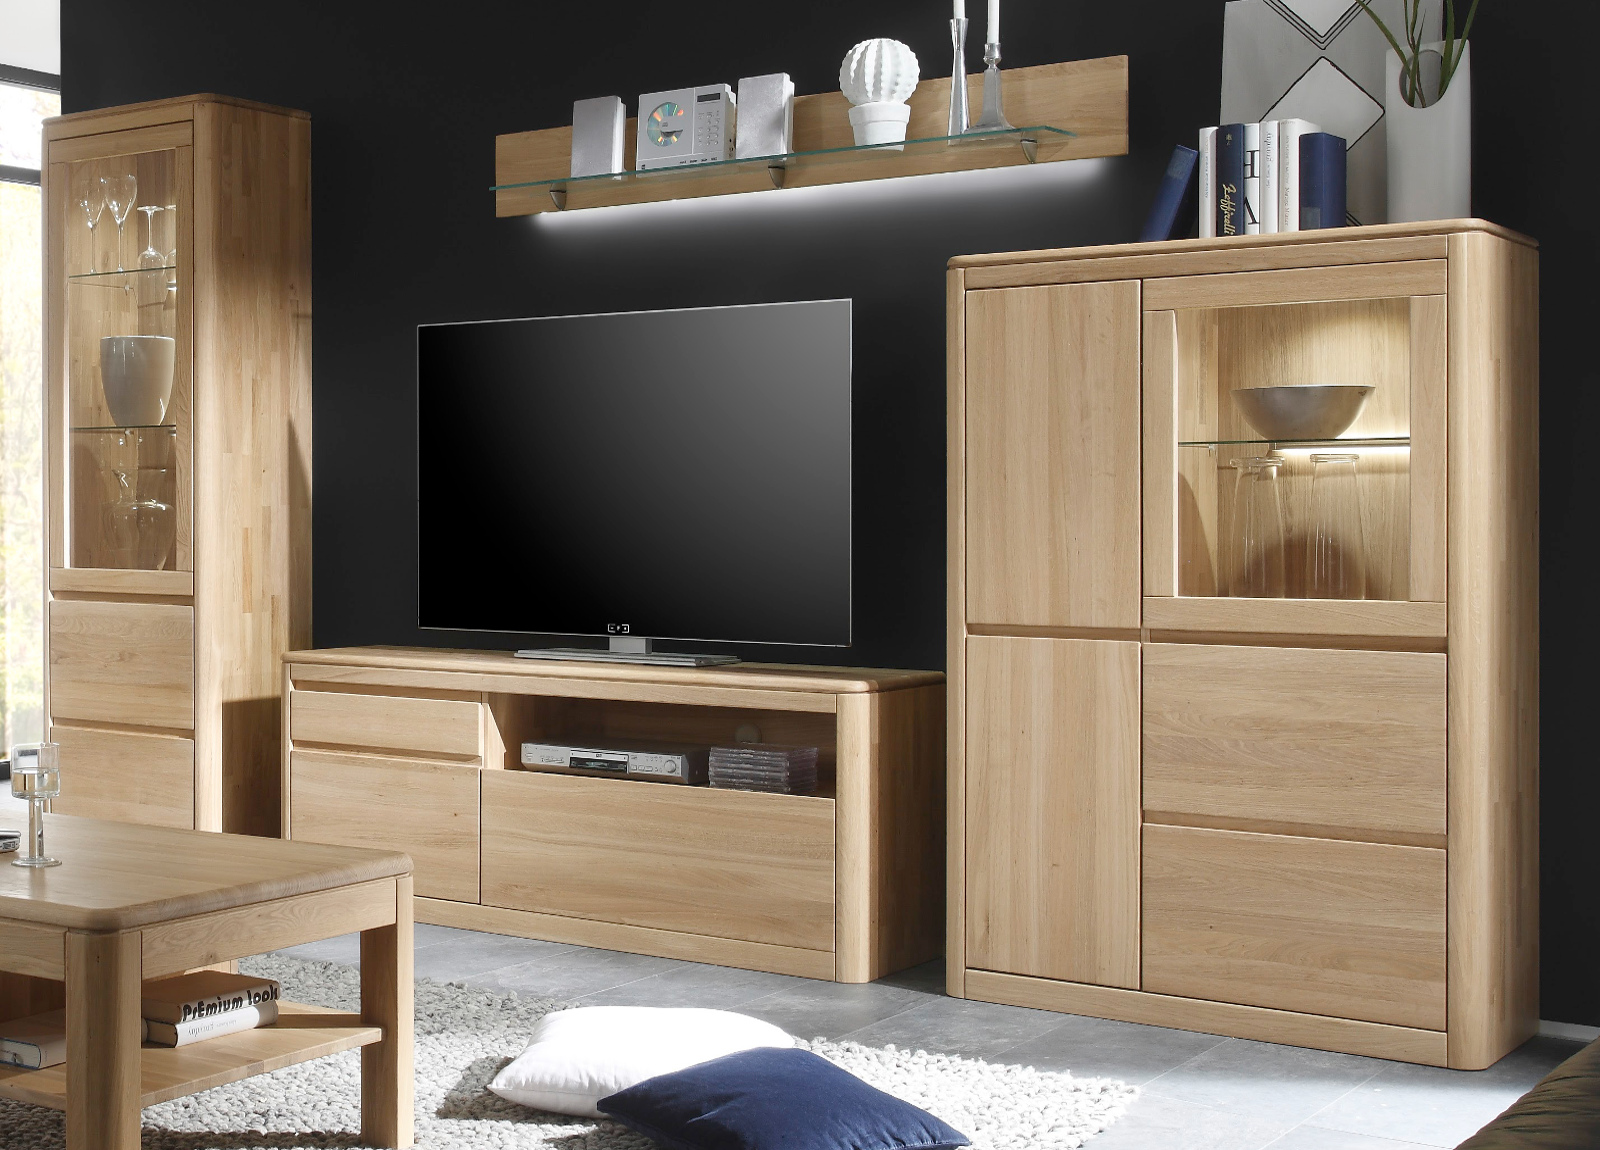 wohnzimmer schrankwand massiv eiche bianco wohnwand naturel m bel ge lt gewachst. Black Bedroom Furniture Sets. Home Design Ideas